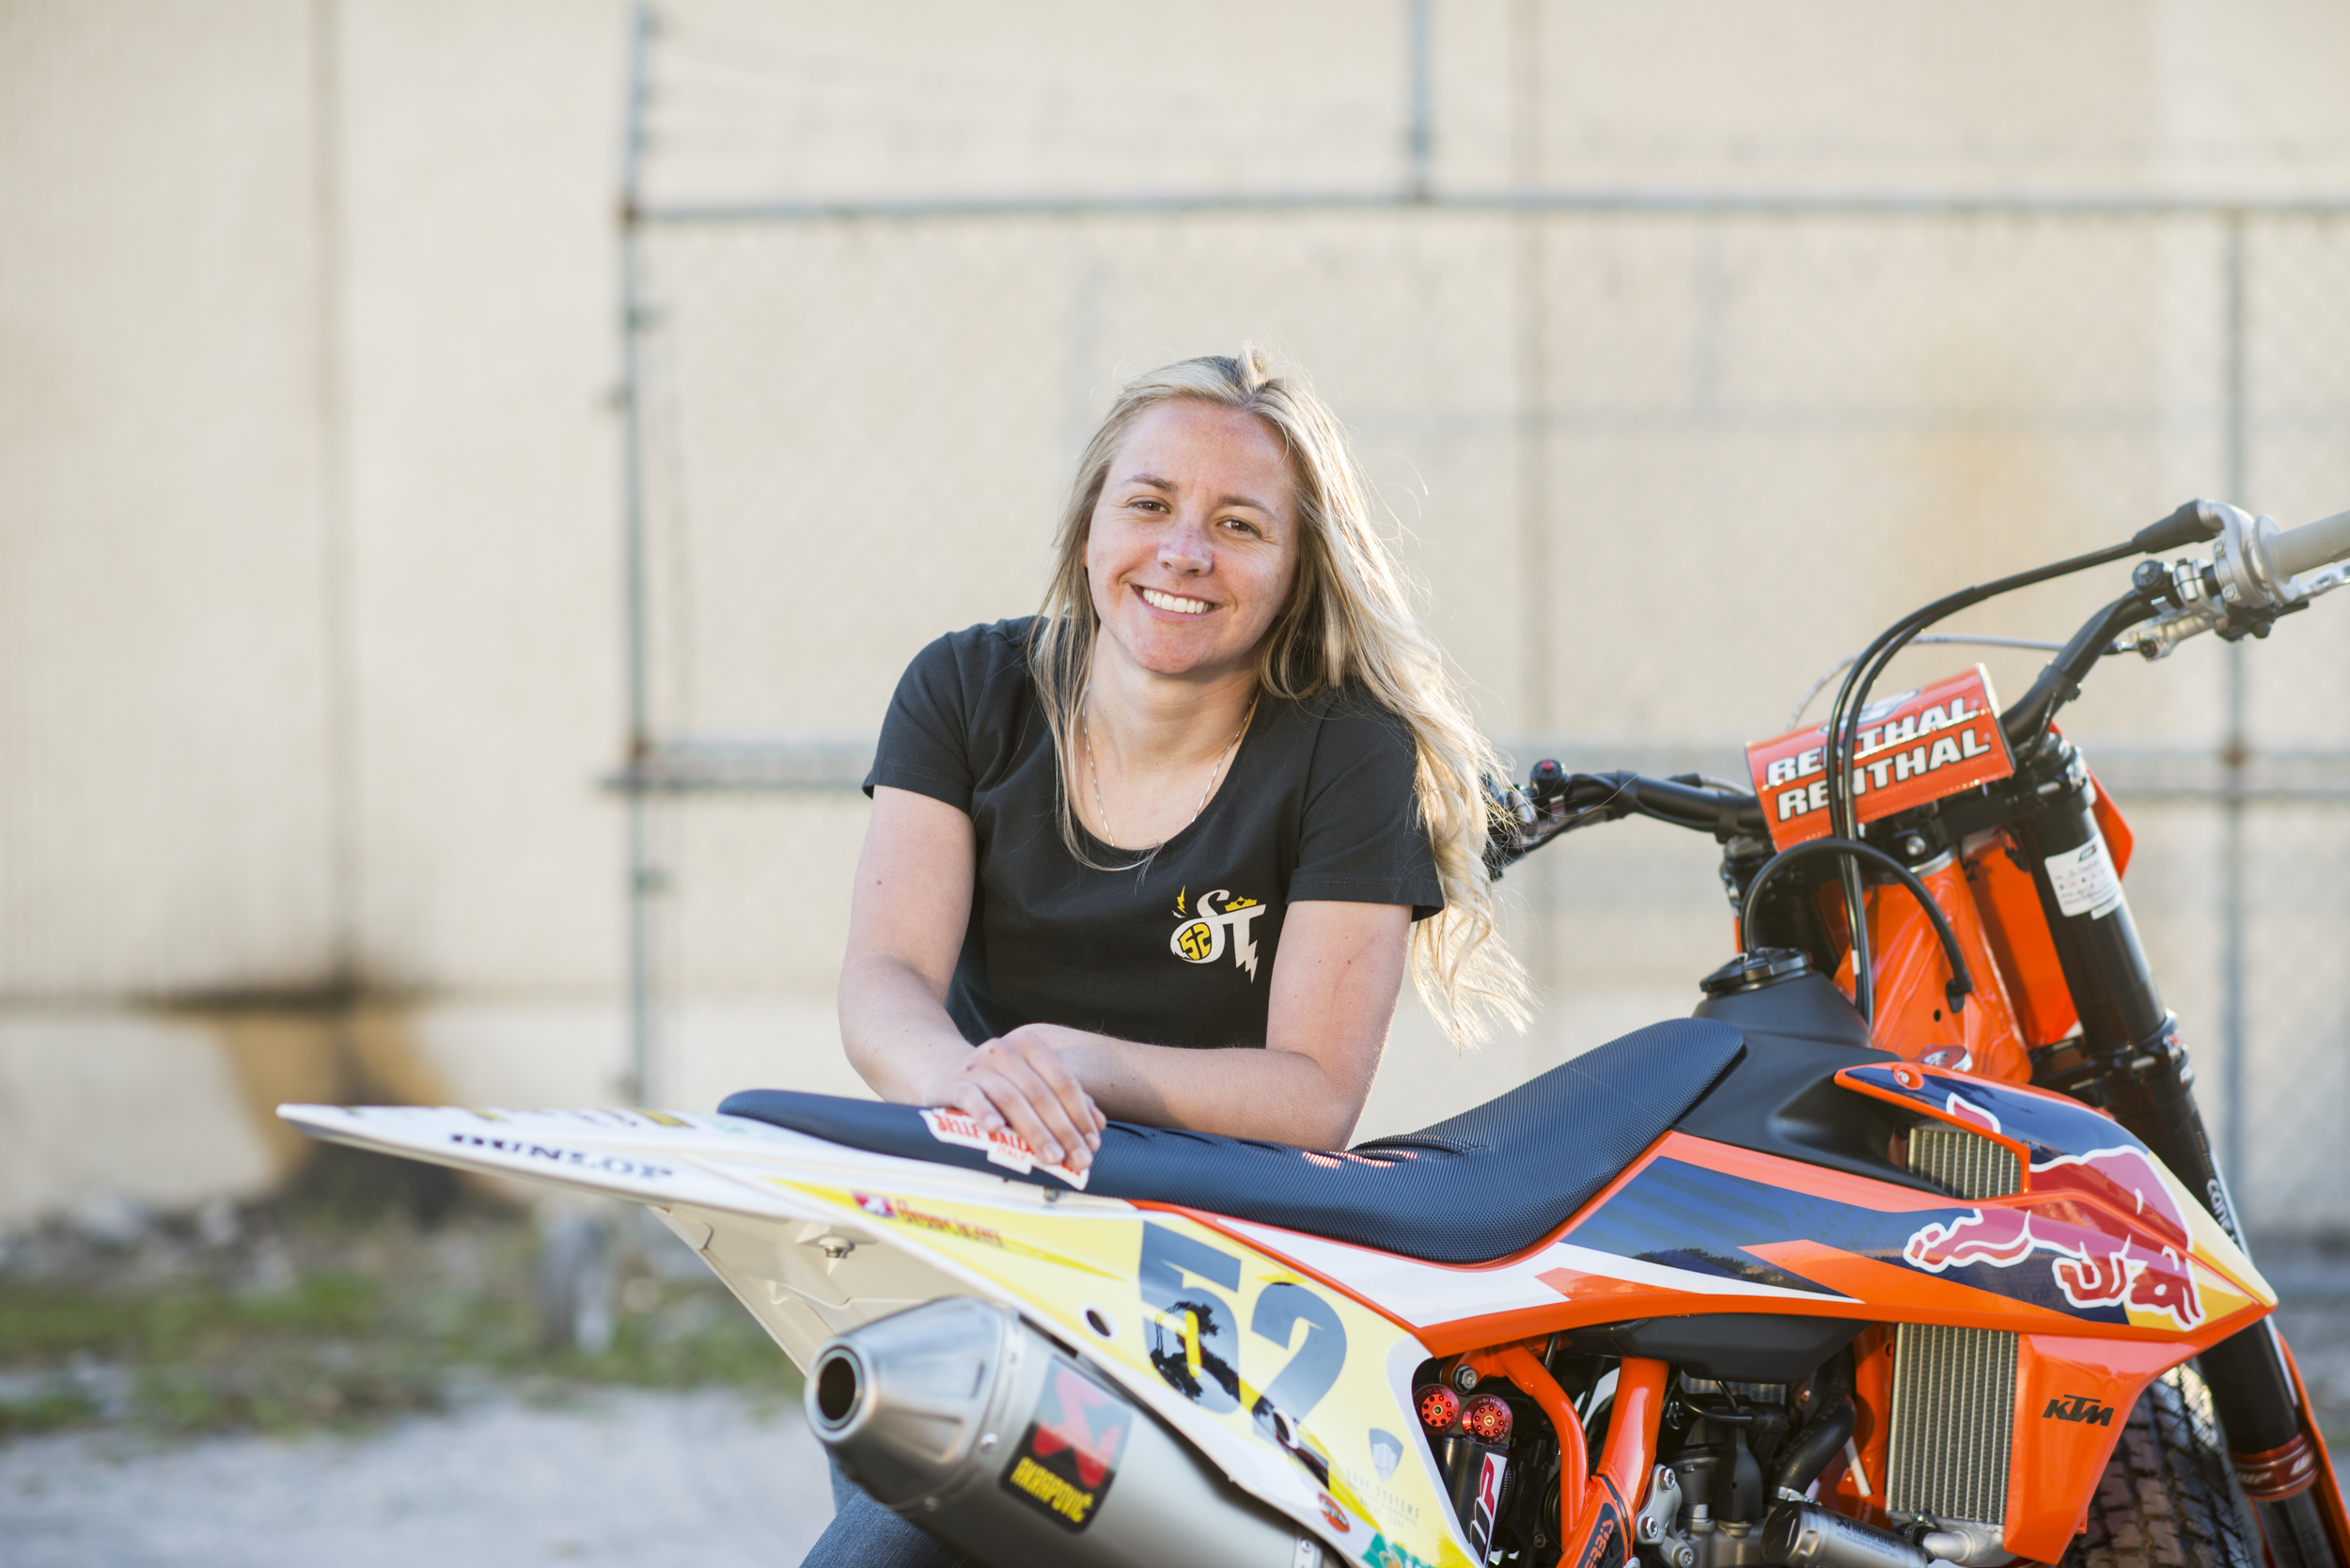 American Flat Track's Shayna Texter Inks Deal with Red Torpedo Clothing as Queen of Hearts